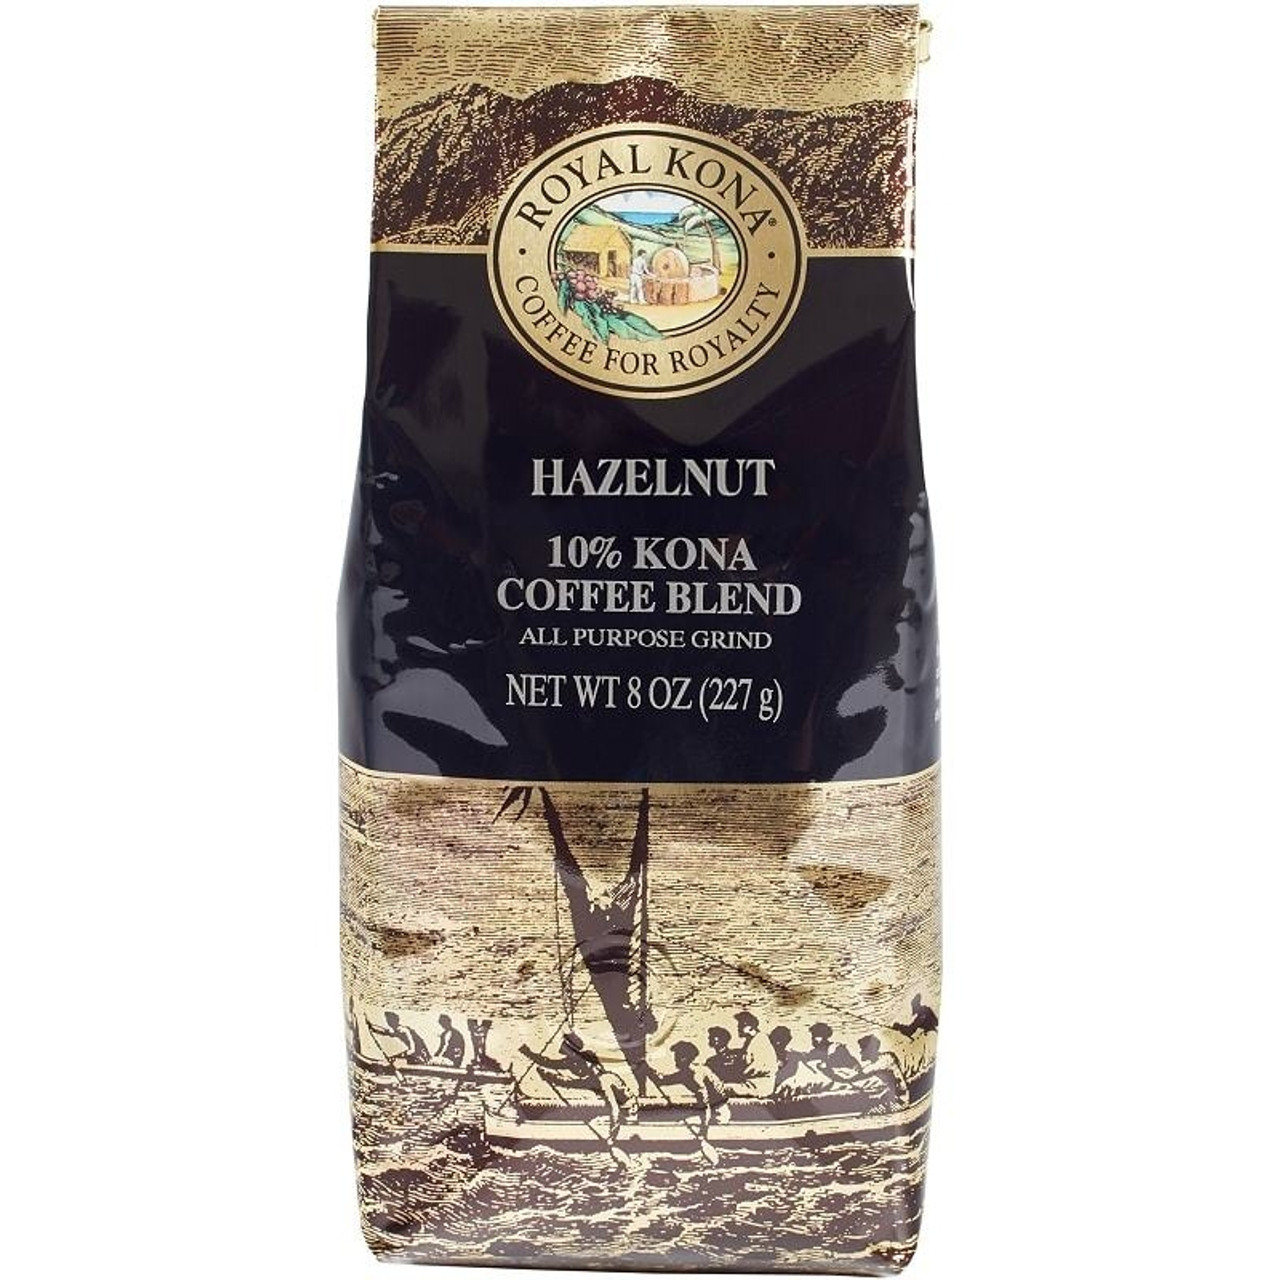 Royal Kona Hazelnut Flavored